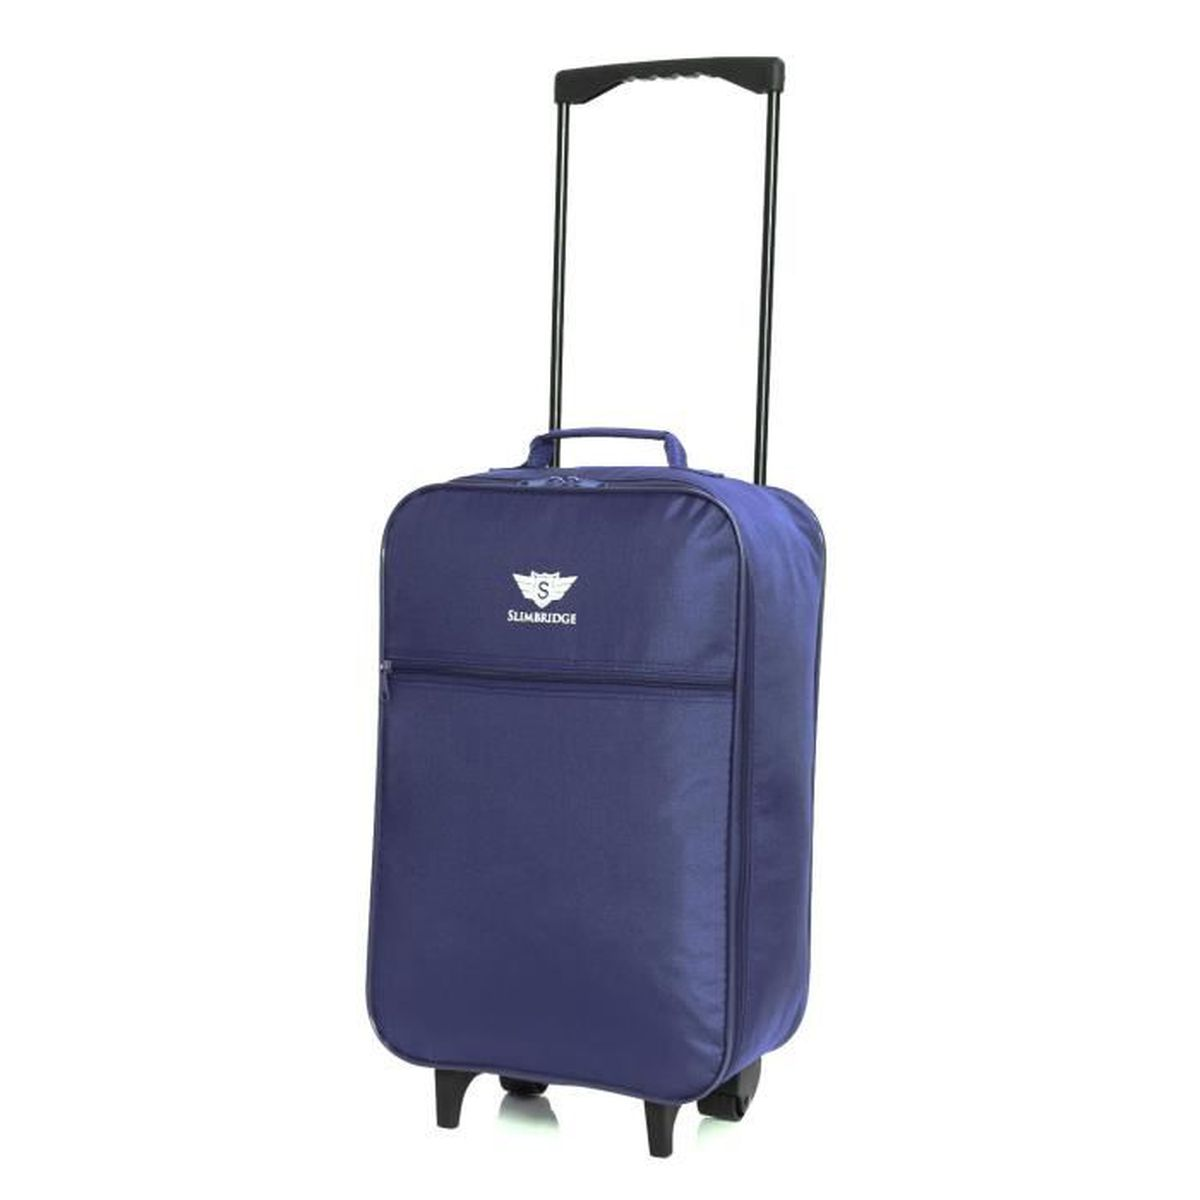 Cabine Bag À Ryanair Main Bagage Flybe Valise Trolley Easyjet qE6F4